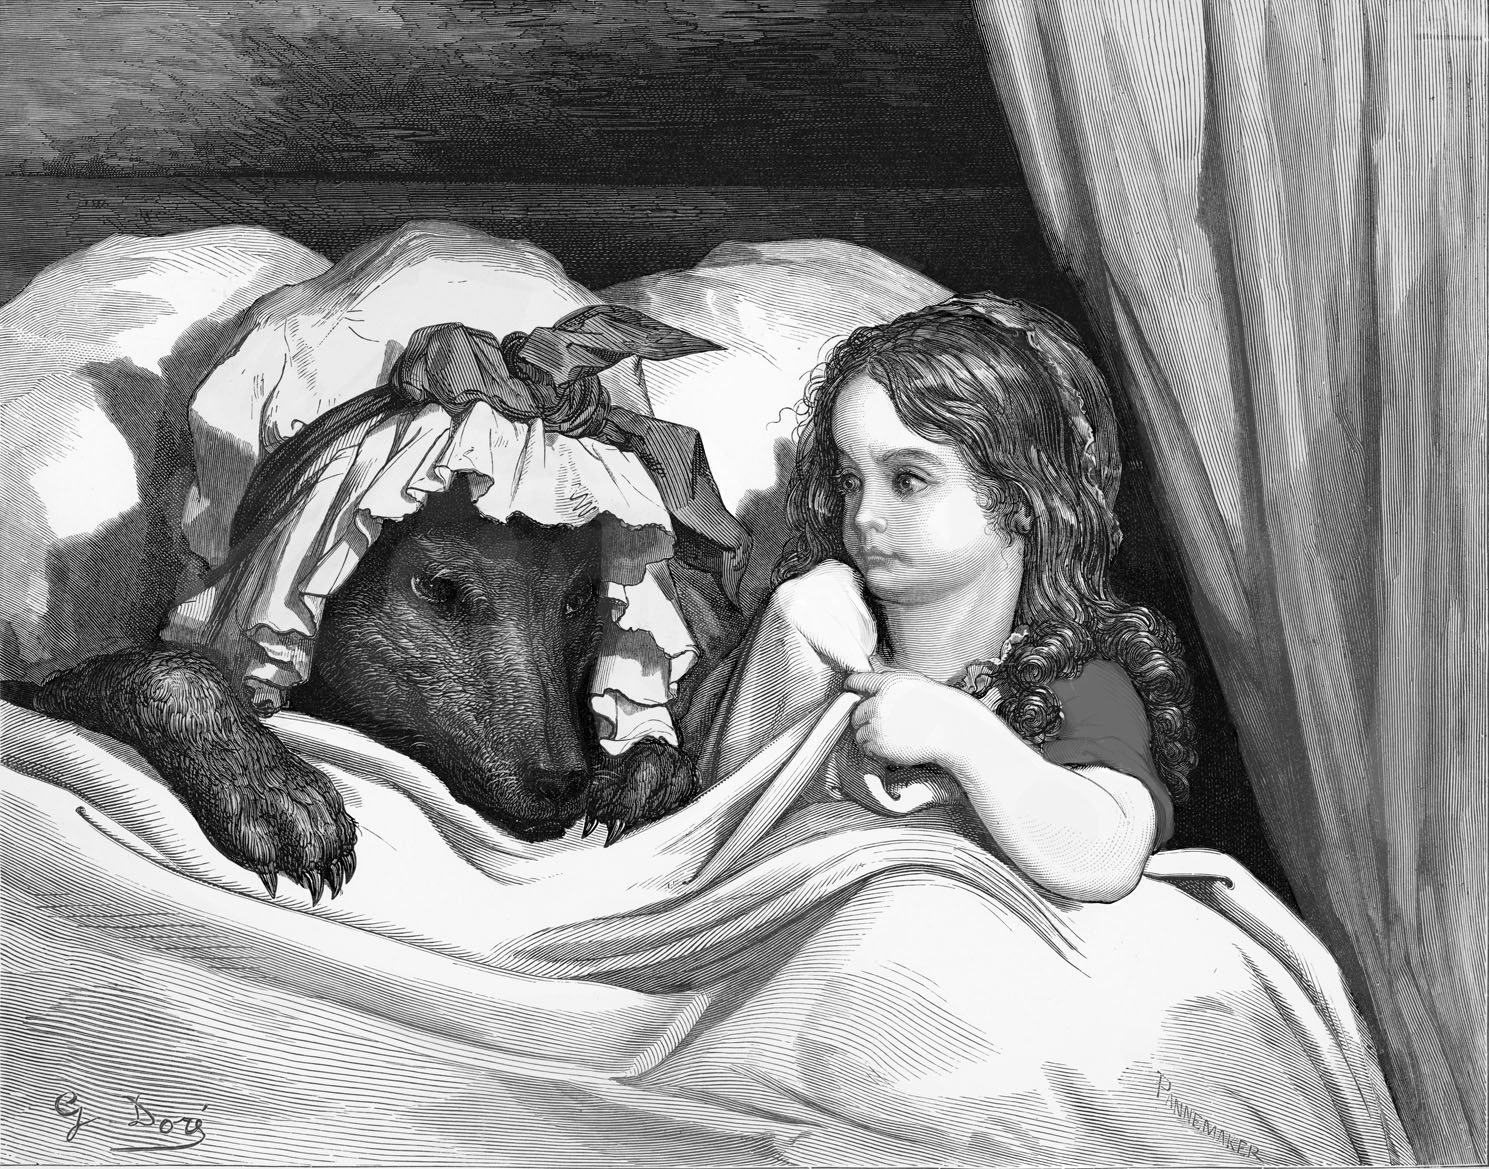 Charles Perrault 's, Little Red Riding Hood: Little Red Riding Hood with the wolf, engraving by Gustave Doré.  Little Red Riding Hood sits in the bed next to the wolf, disguised in her grandmother 's night-cap. Drawn by Gustave Doré, French artist, b January 6, 1832 – January 23, 1883. Engraved by Pannemaker. From Charles Perrault 's Les Contes de Perrault / Perrault 's Fairy Tales; CP: French writer, b January 12,1628 –  May 16, 1703.  (Photo by Culture Club/Getty Images)